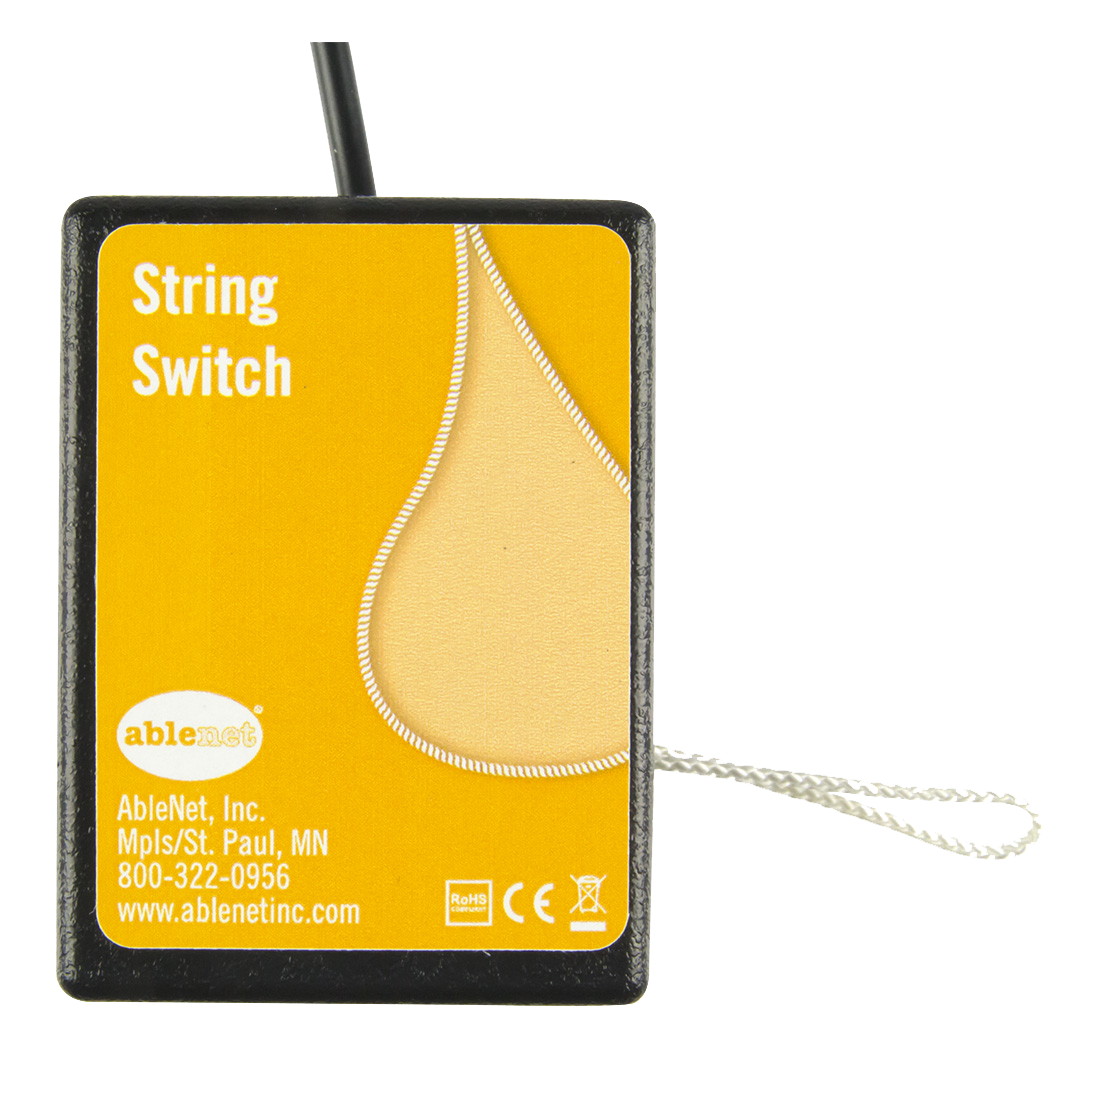 String Switch